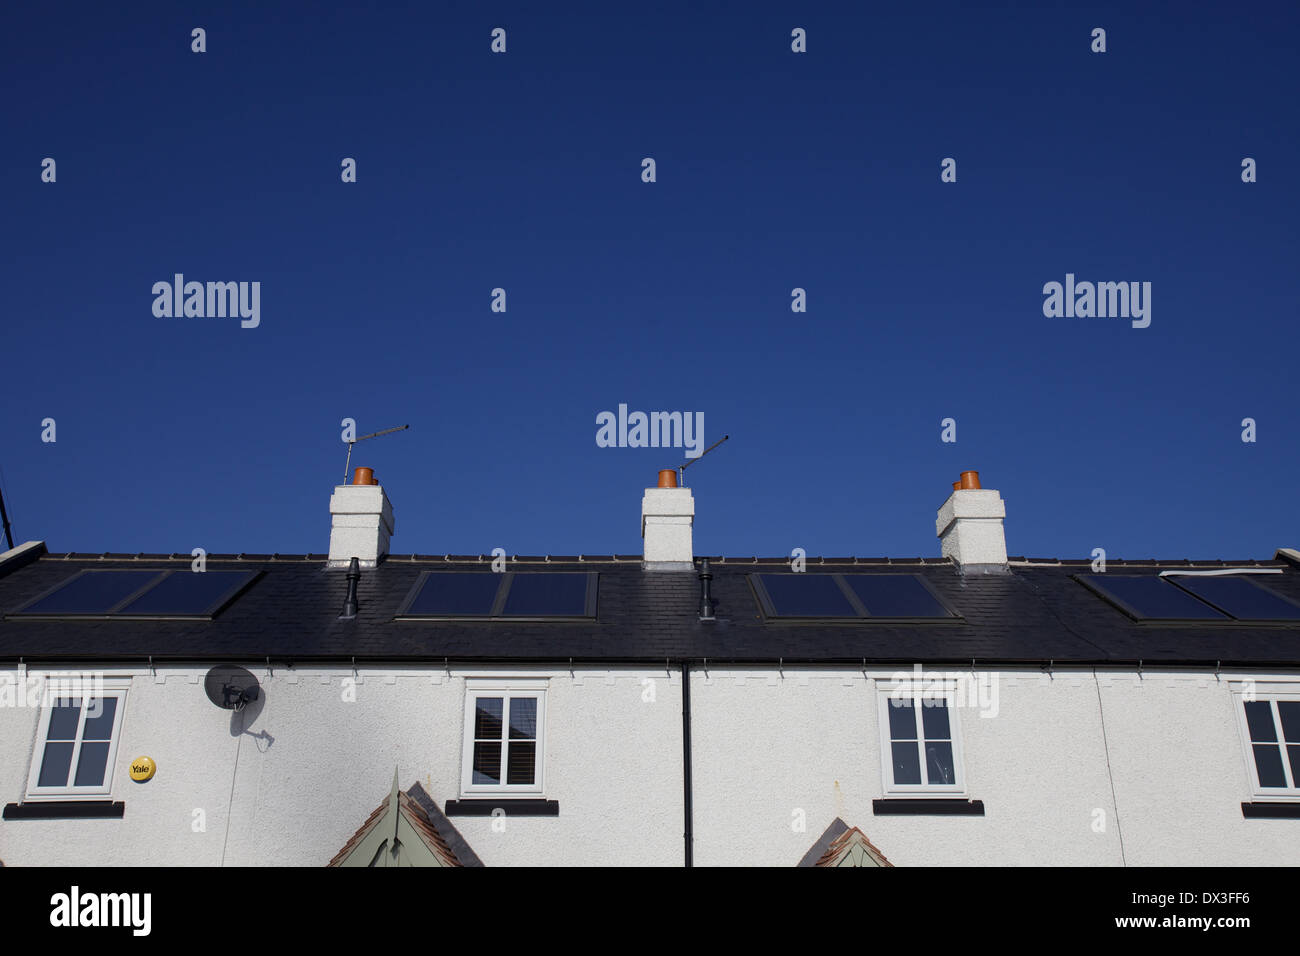 solar panels on a row of terraced houses - Stock Image